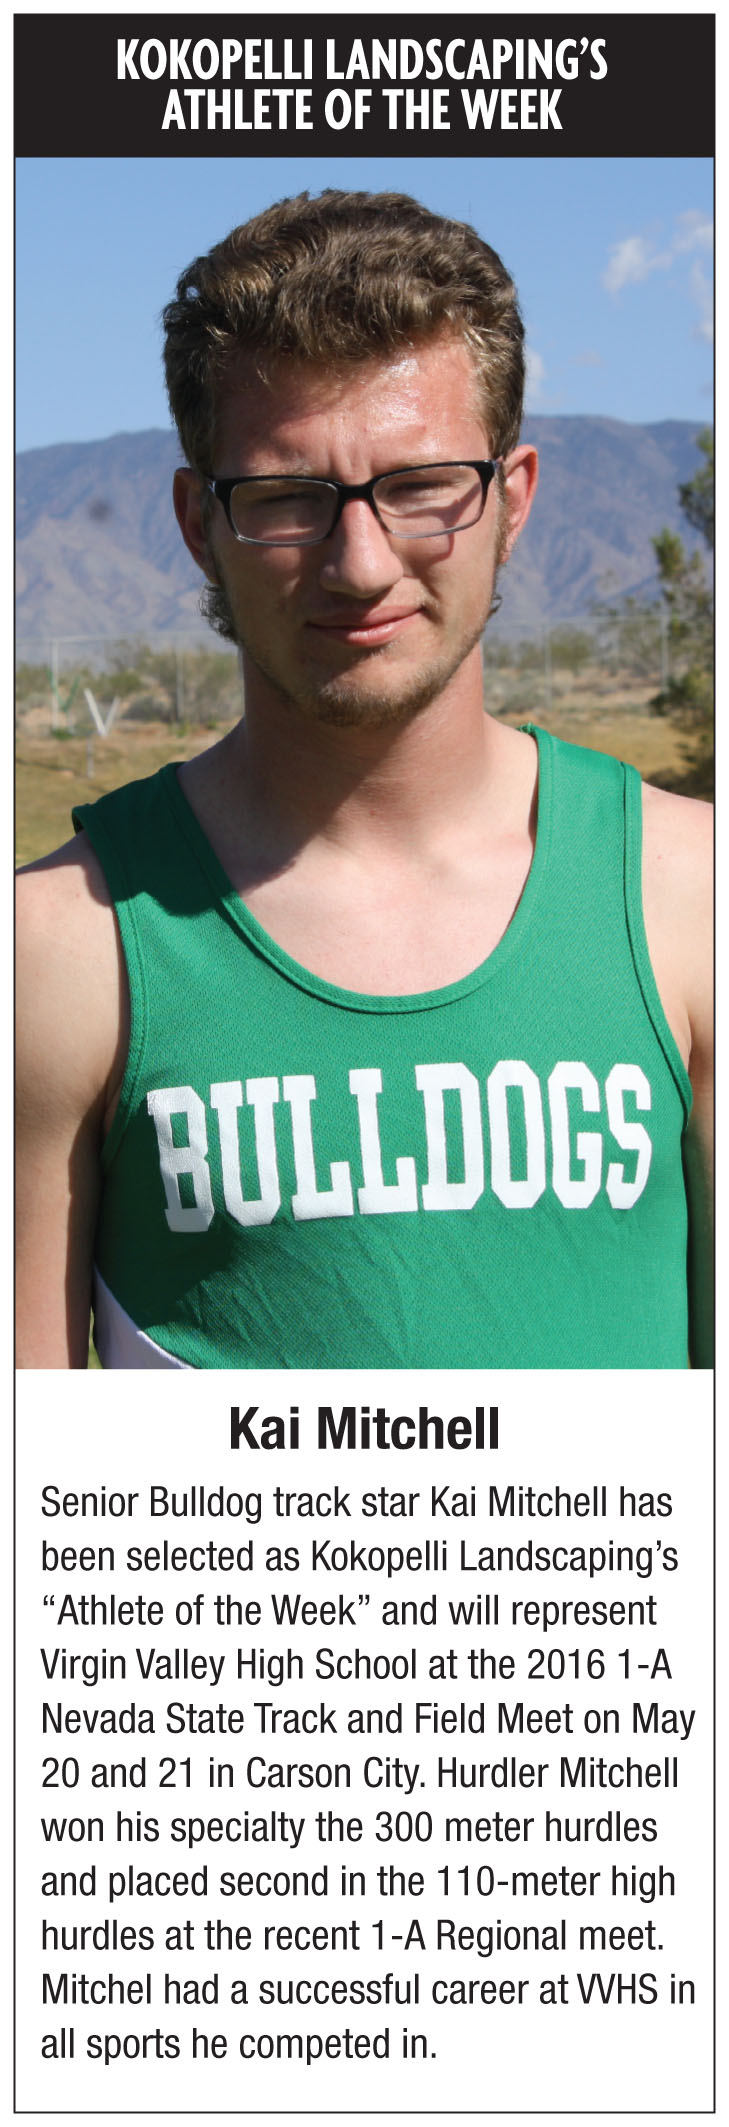 Kokopelli Landscaping's Athlete of the week